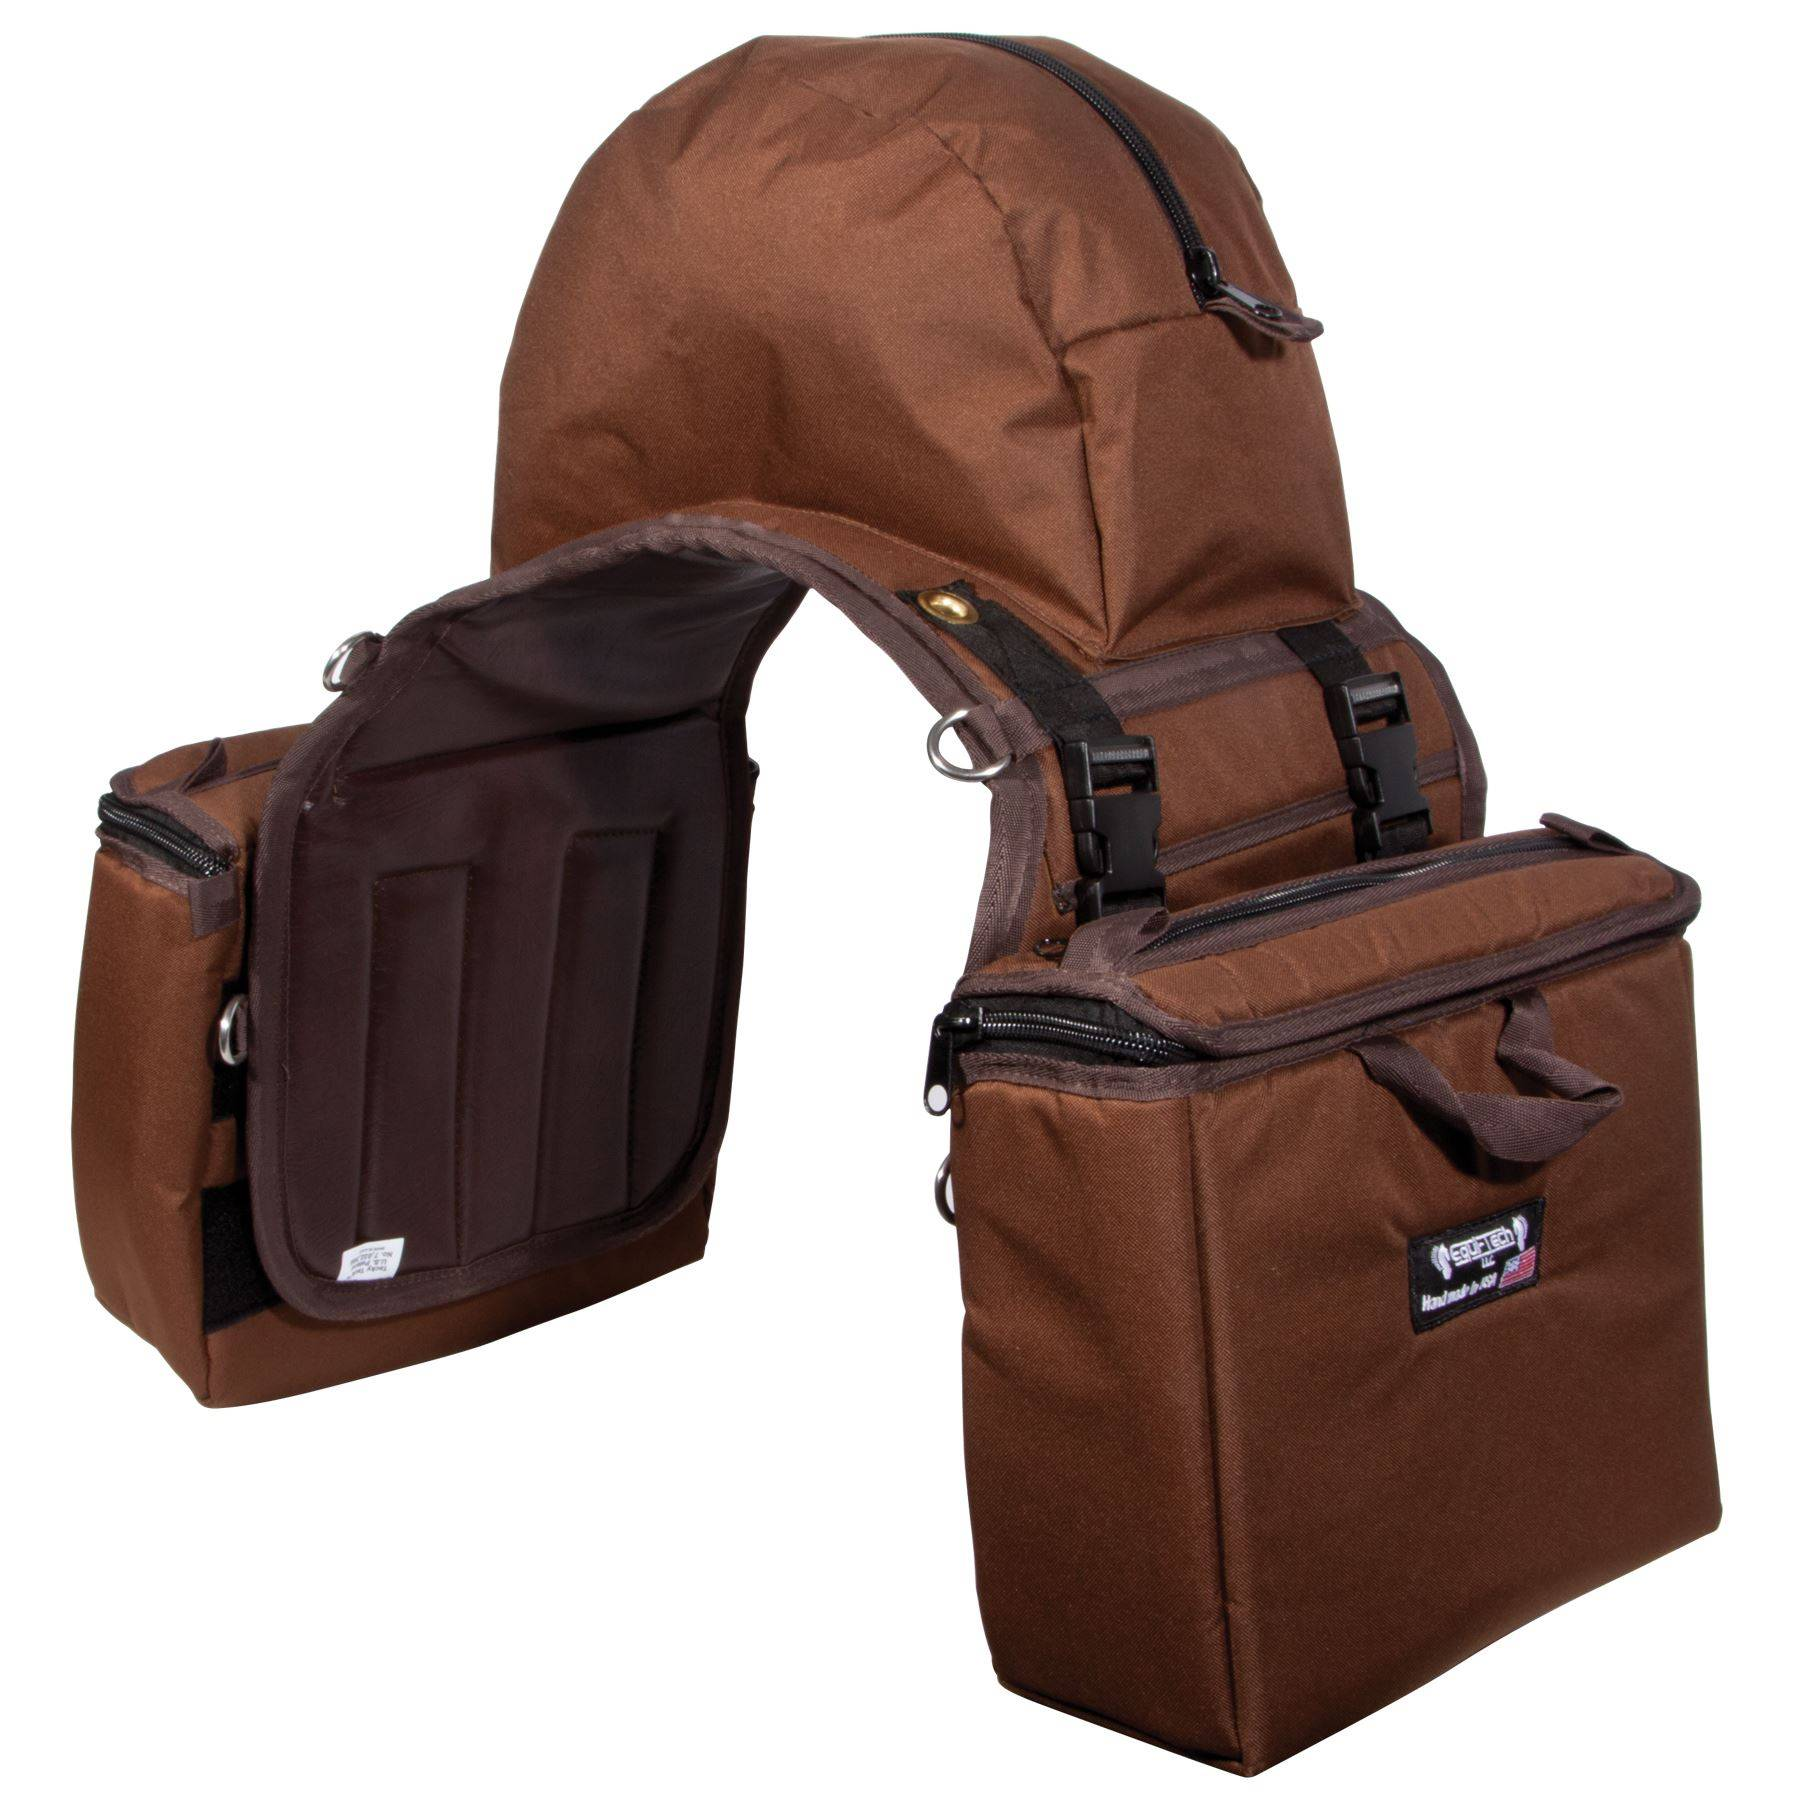 Equi Tech Stay Put Insulated Saddle Bag Large In Western